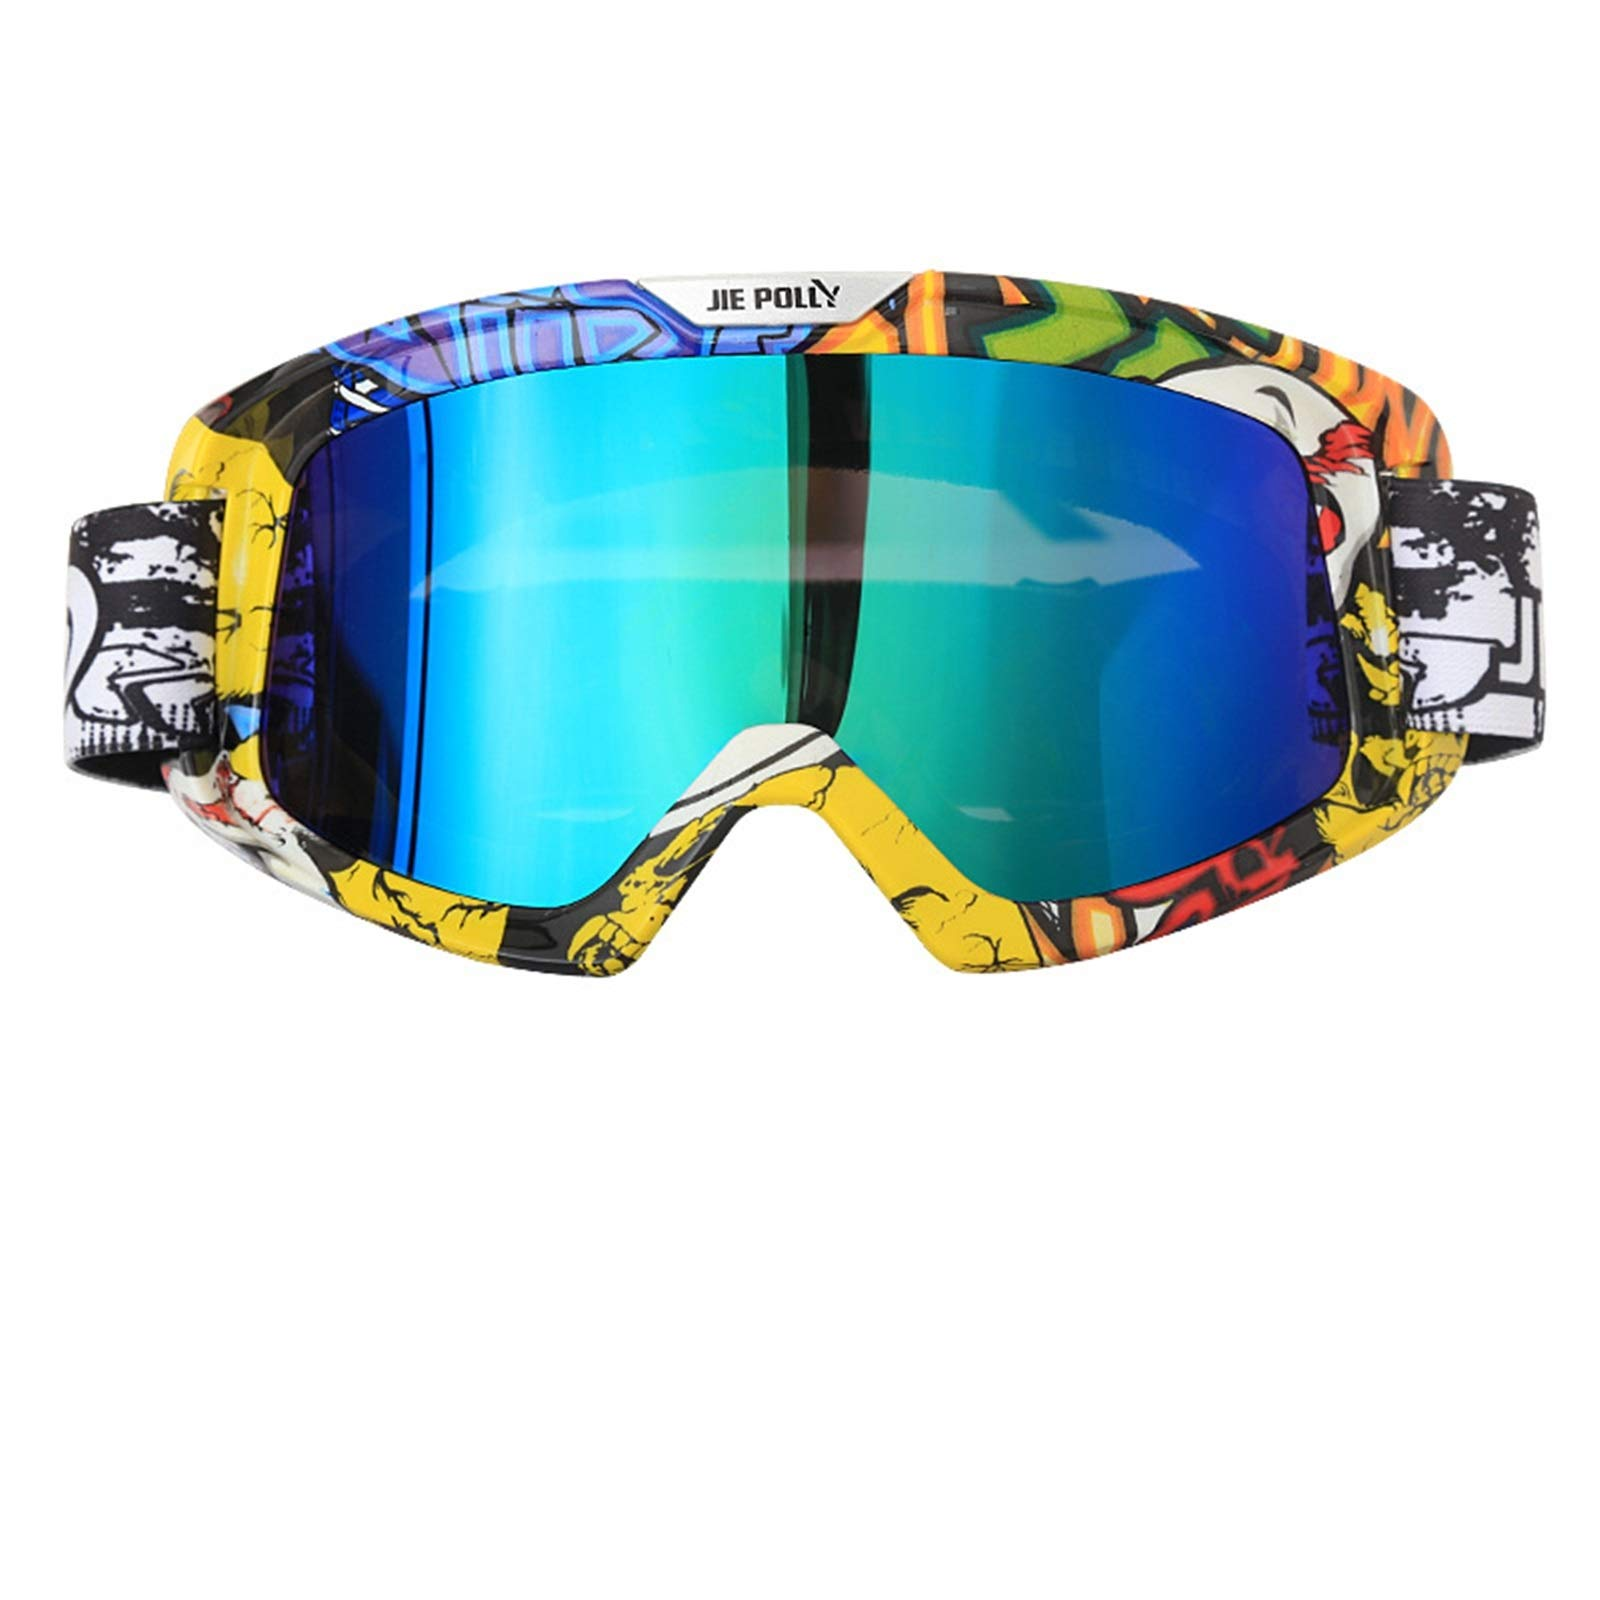 Adisaer Polarized Sports Sunglasses Motorcycle Equipment Off-Road ski Sand-Proof Goggles Colorful A01 for Adults